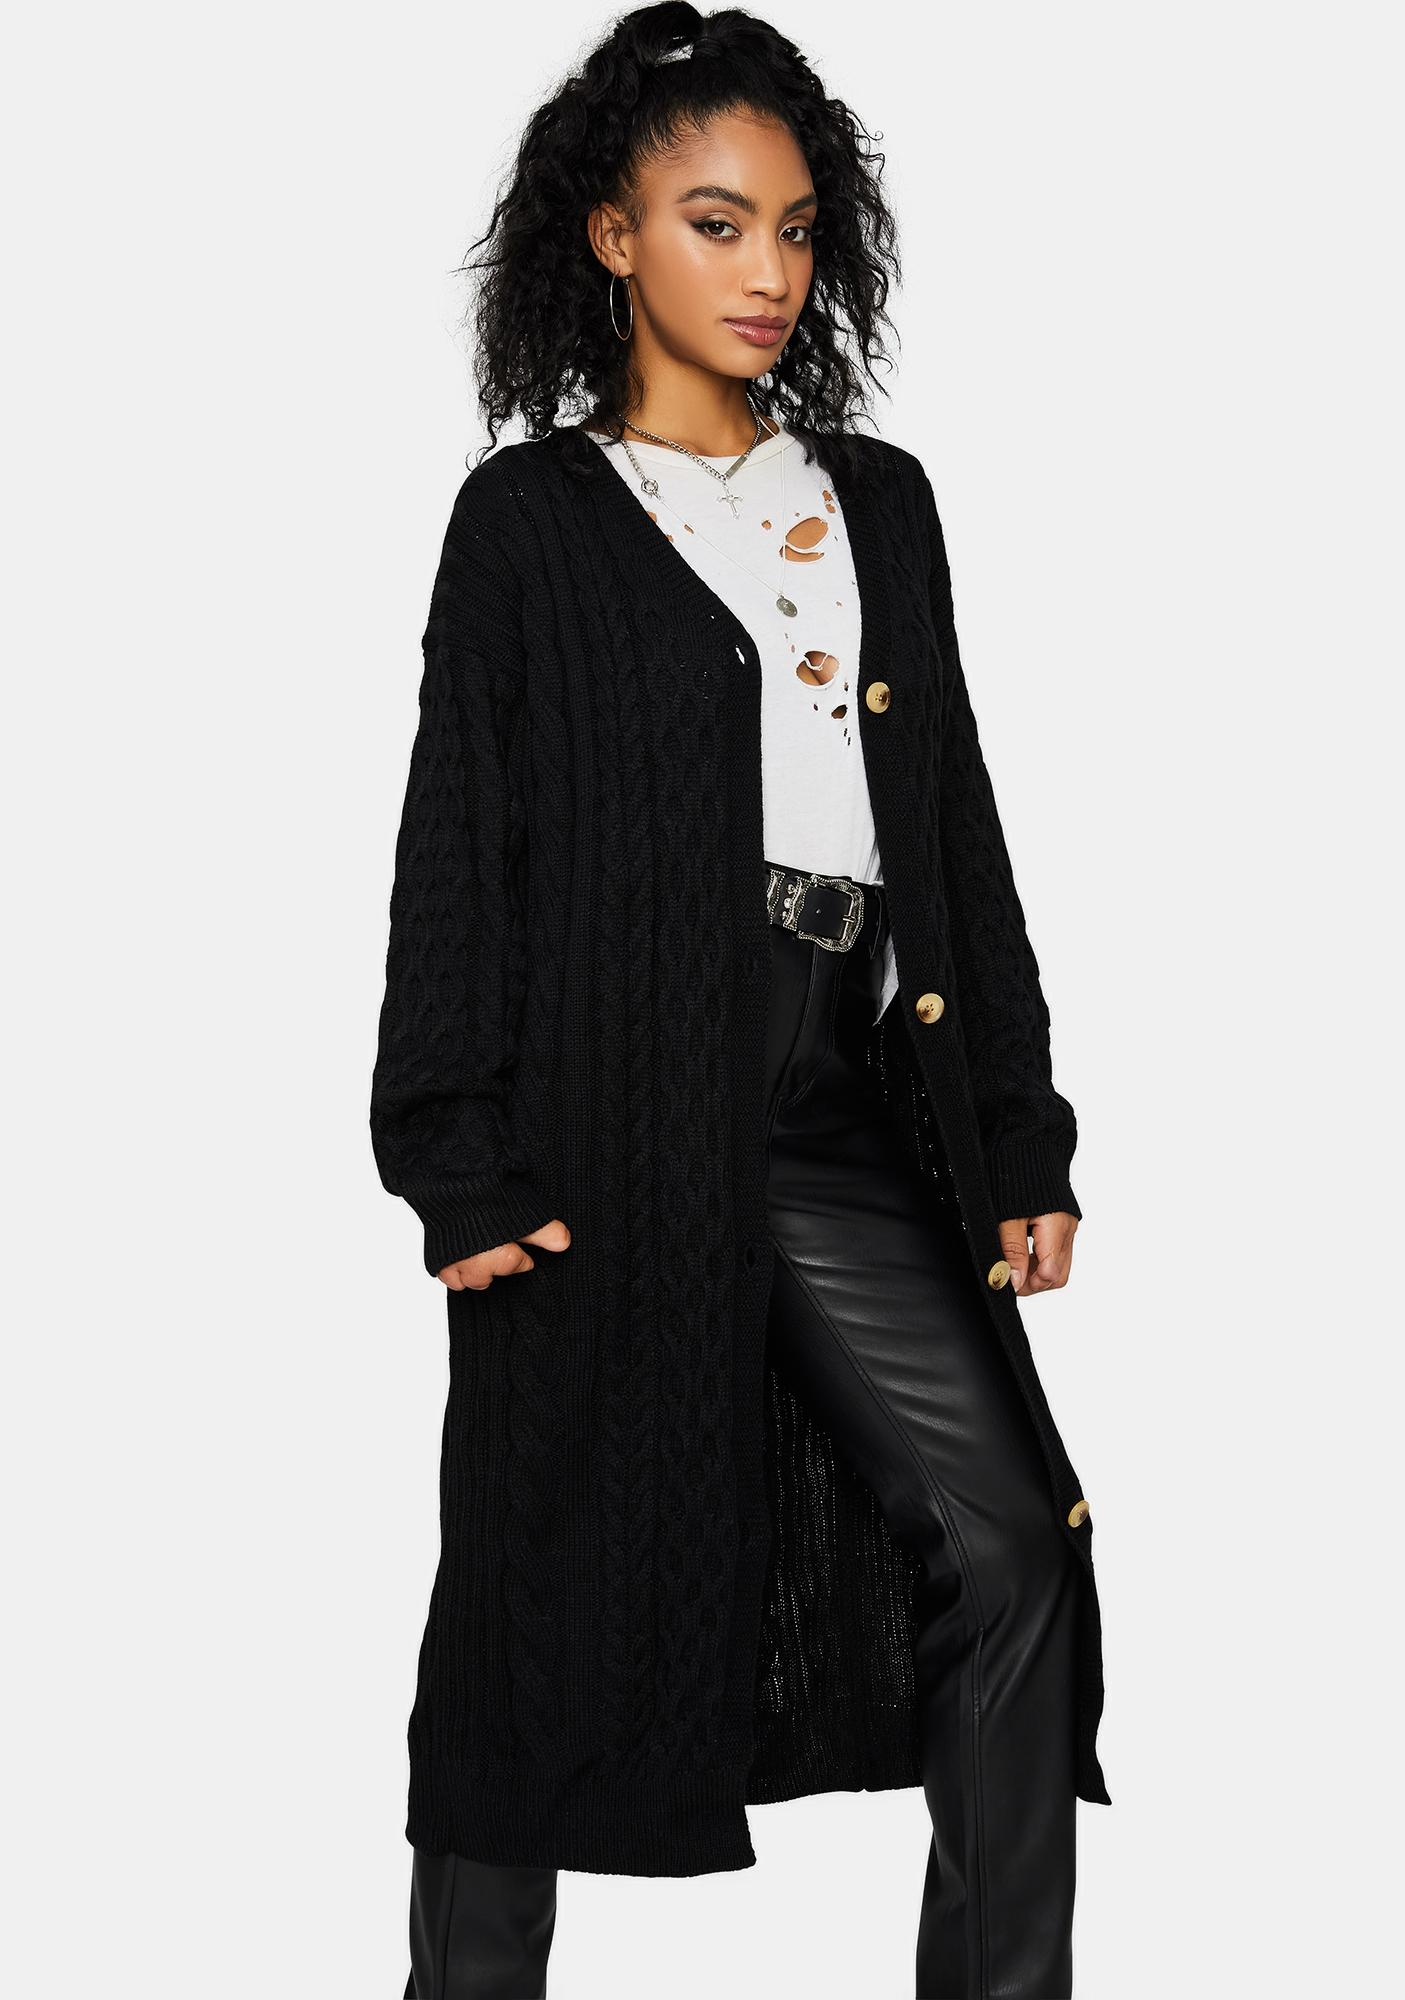 Cuffed Season Long Cardigan